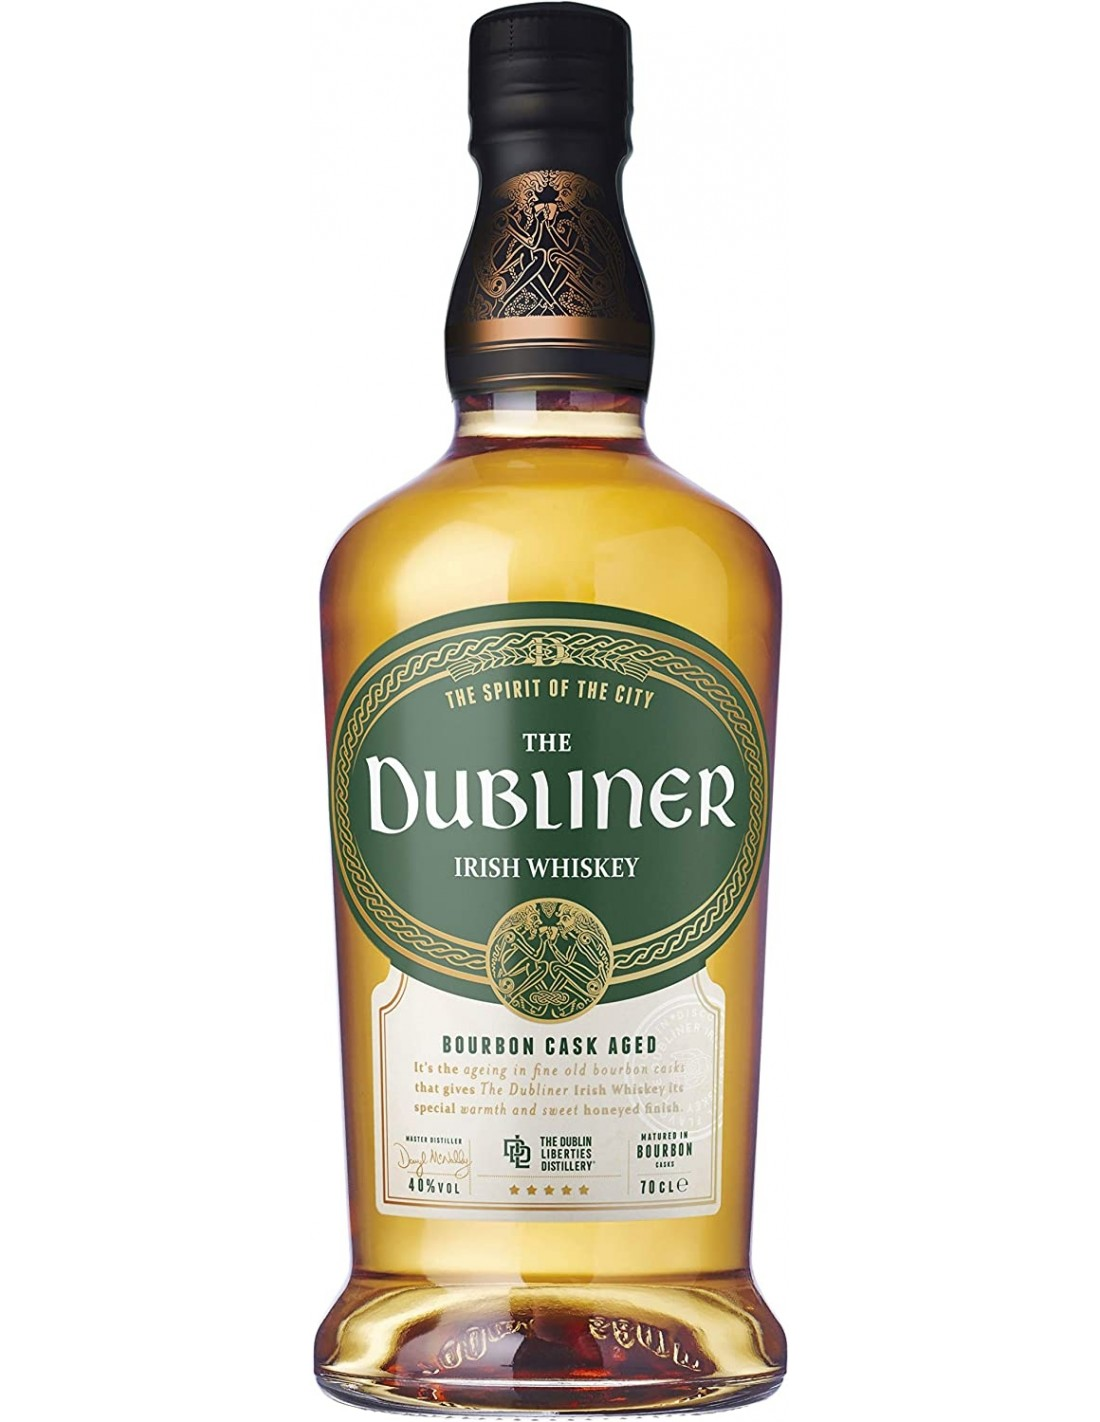 Whisky Bourbon The Dubliner, 40% alc., 0.7L, Irlanda